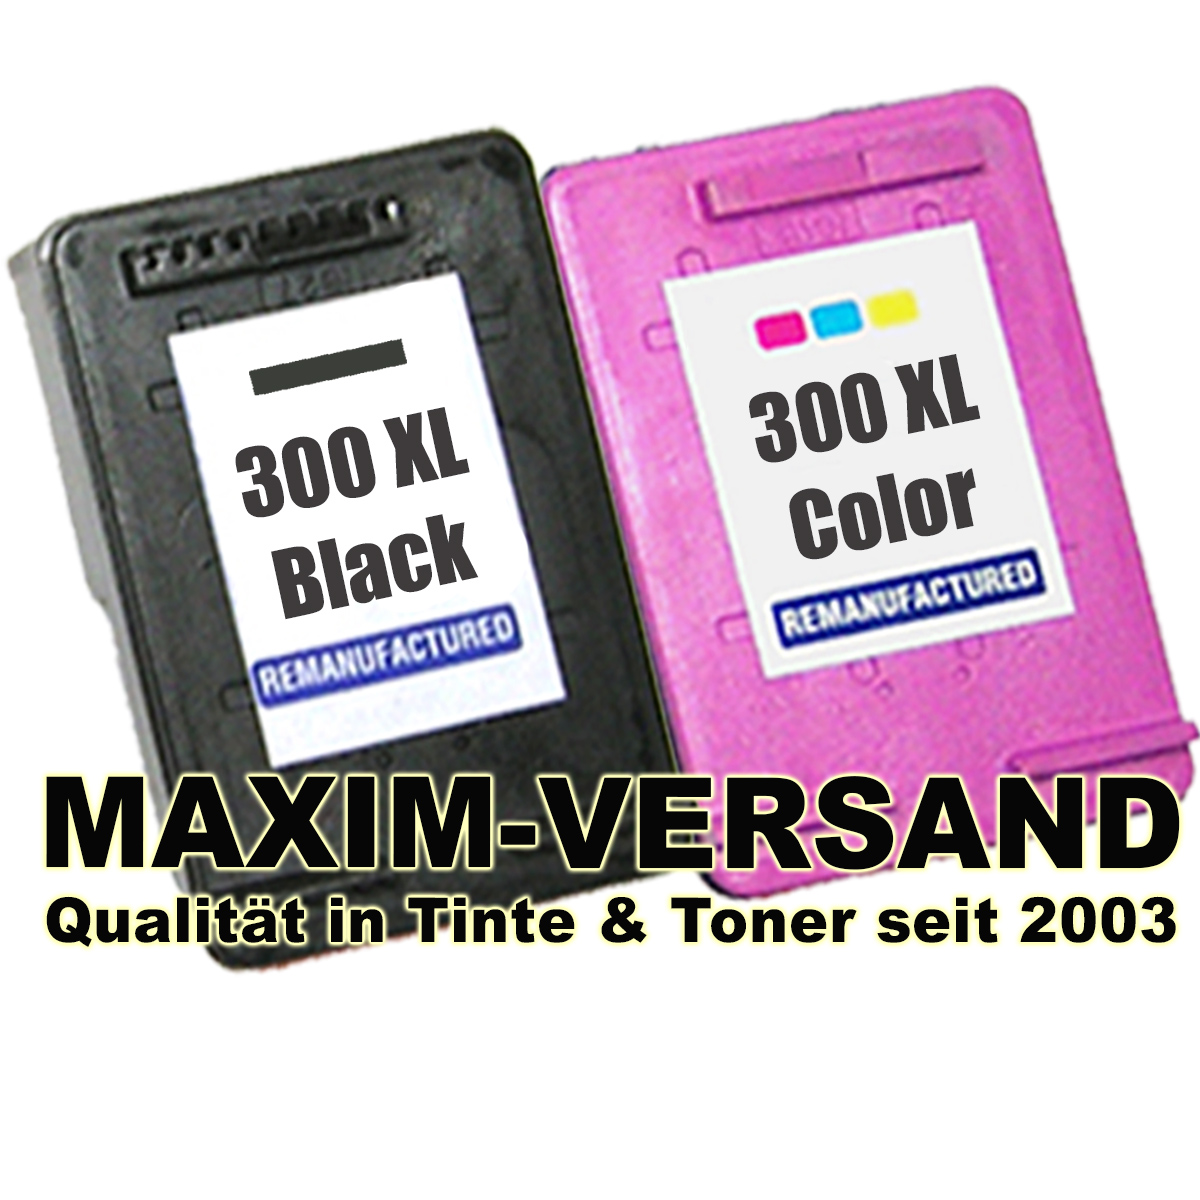 HP 300 XL Black + HP 300 XL Color kompatibel (2er Set)